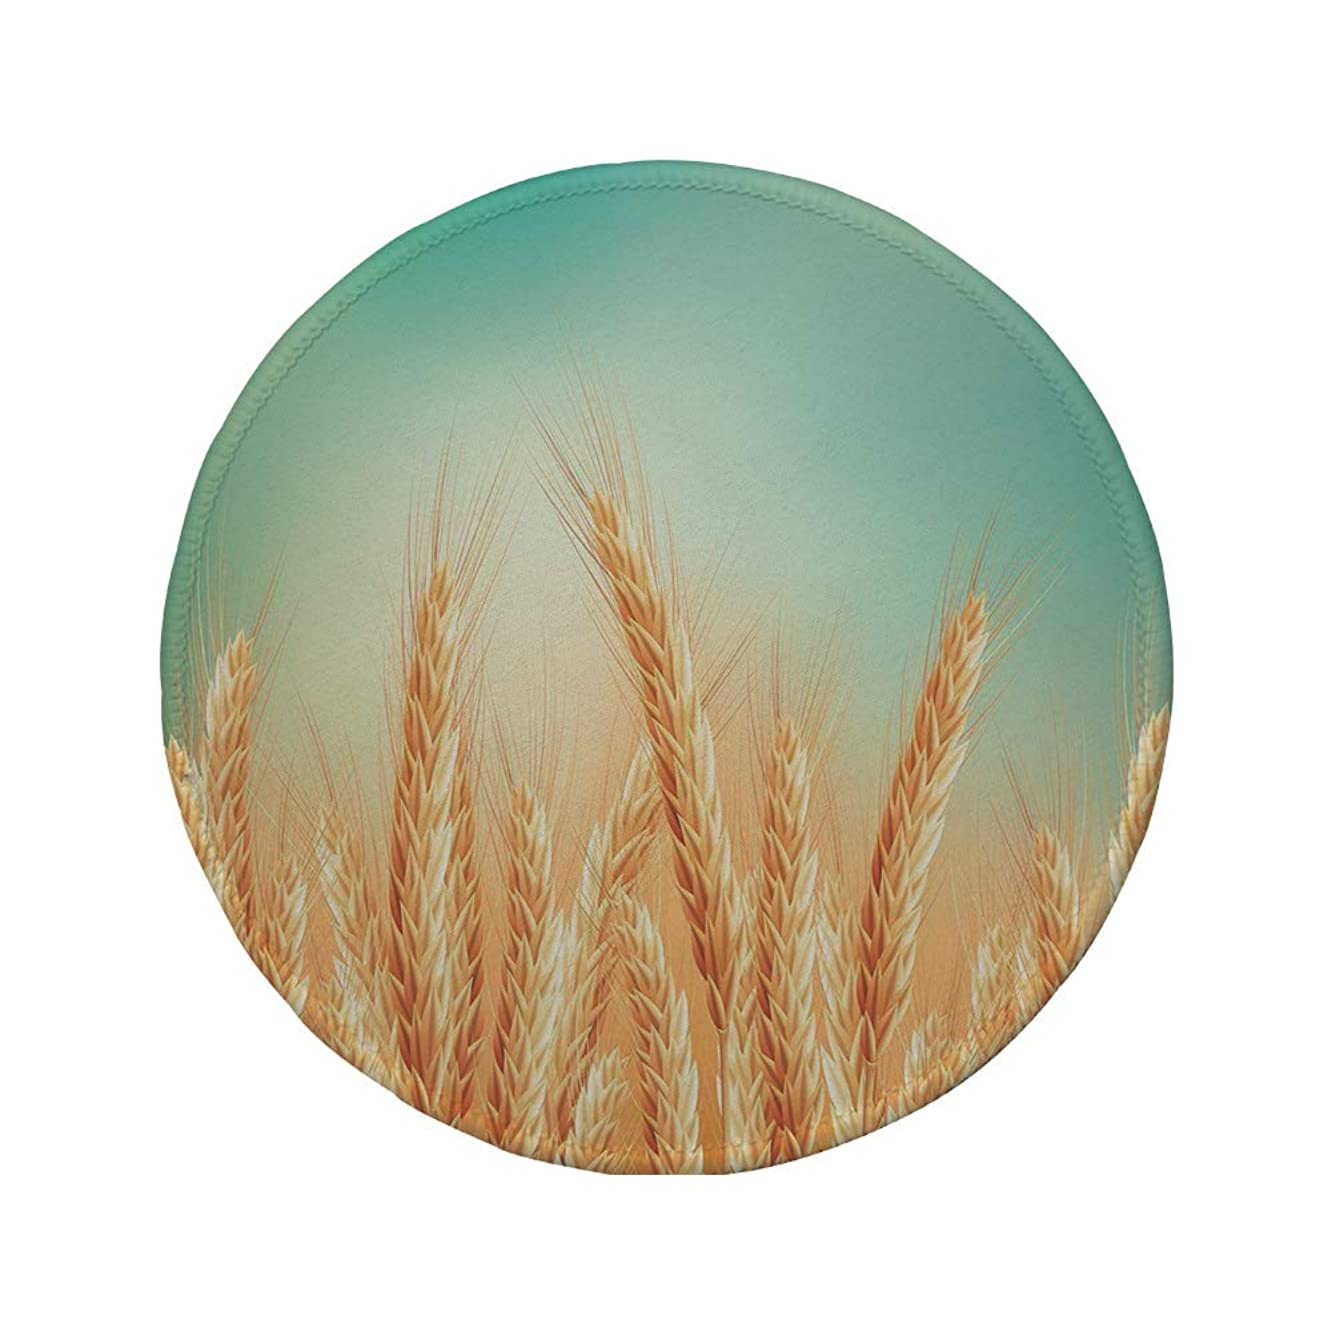 Non-Slip Rubber Round Mouse Pad,Harvest,Wheat Field and Blue Sky Agriculture Themed Abstract Composition,Yellow Orange Mint Green,11.8